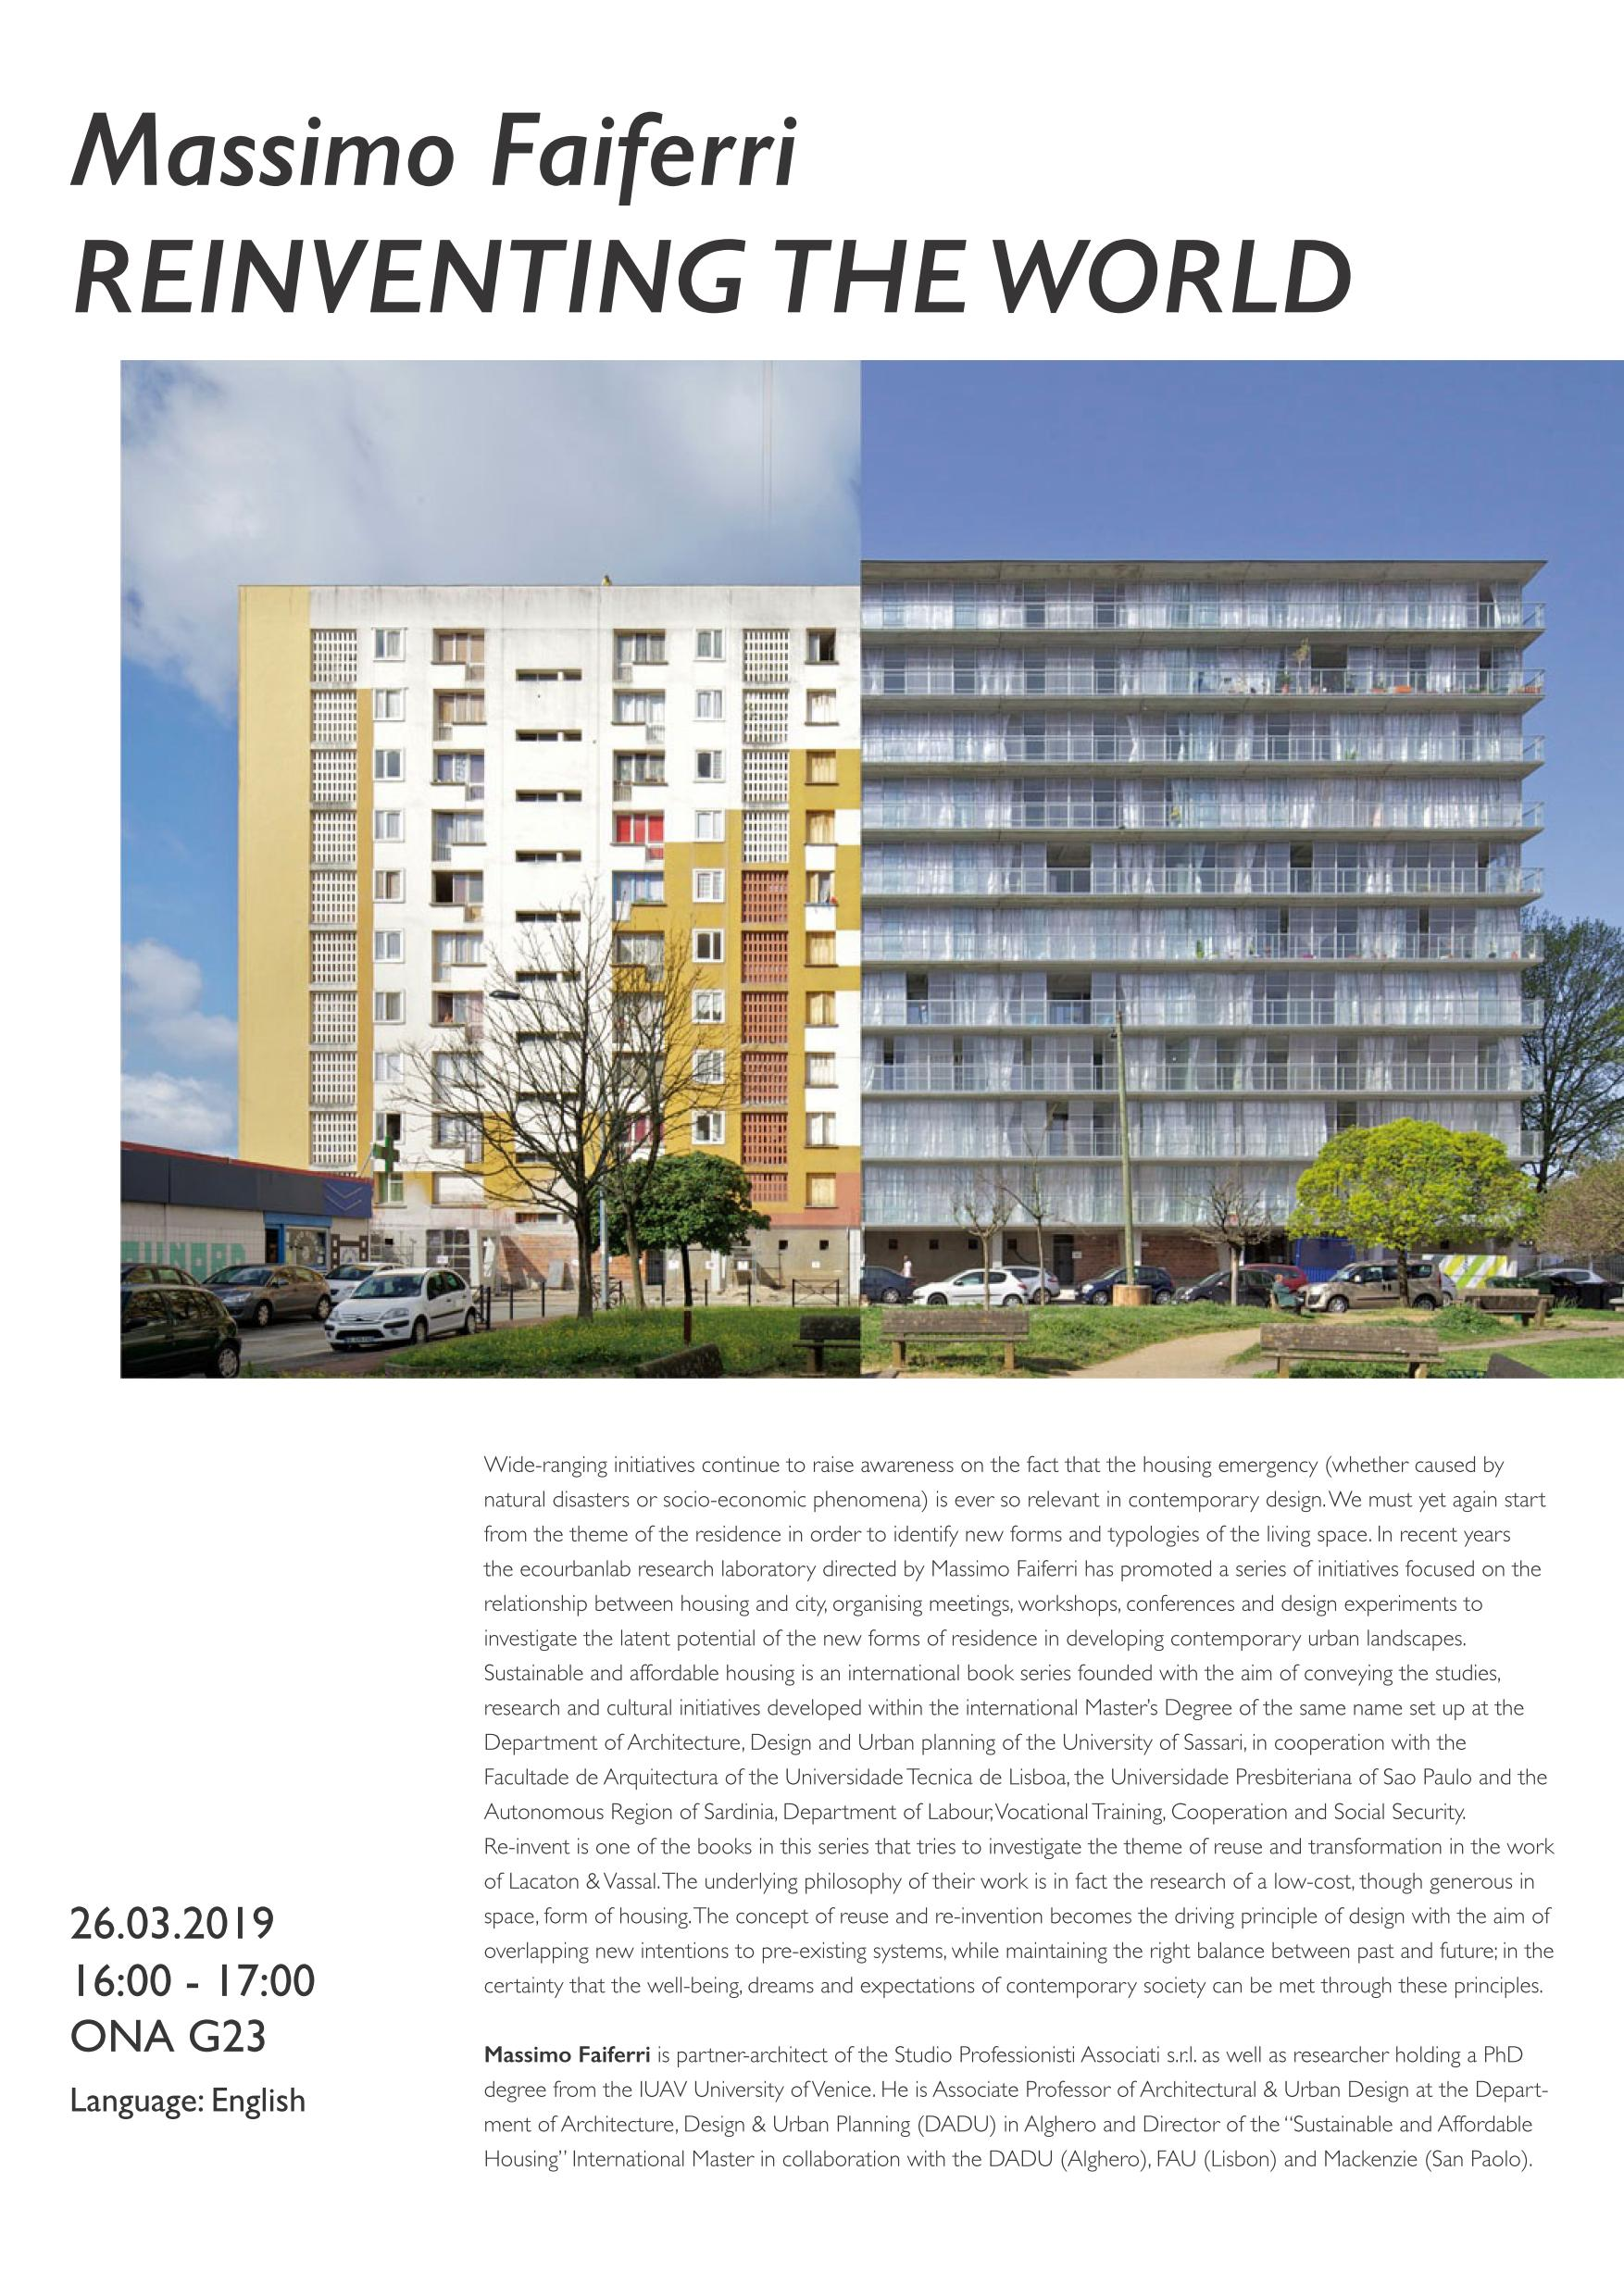 REINVENTING THE WORLD Reuse and transformation as a topic for contemporary housing